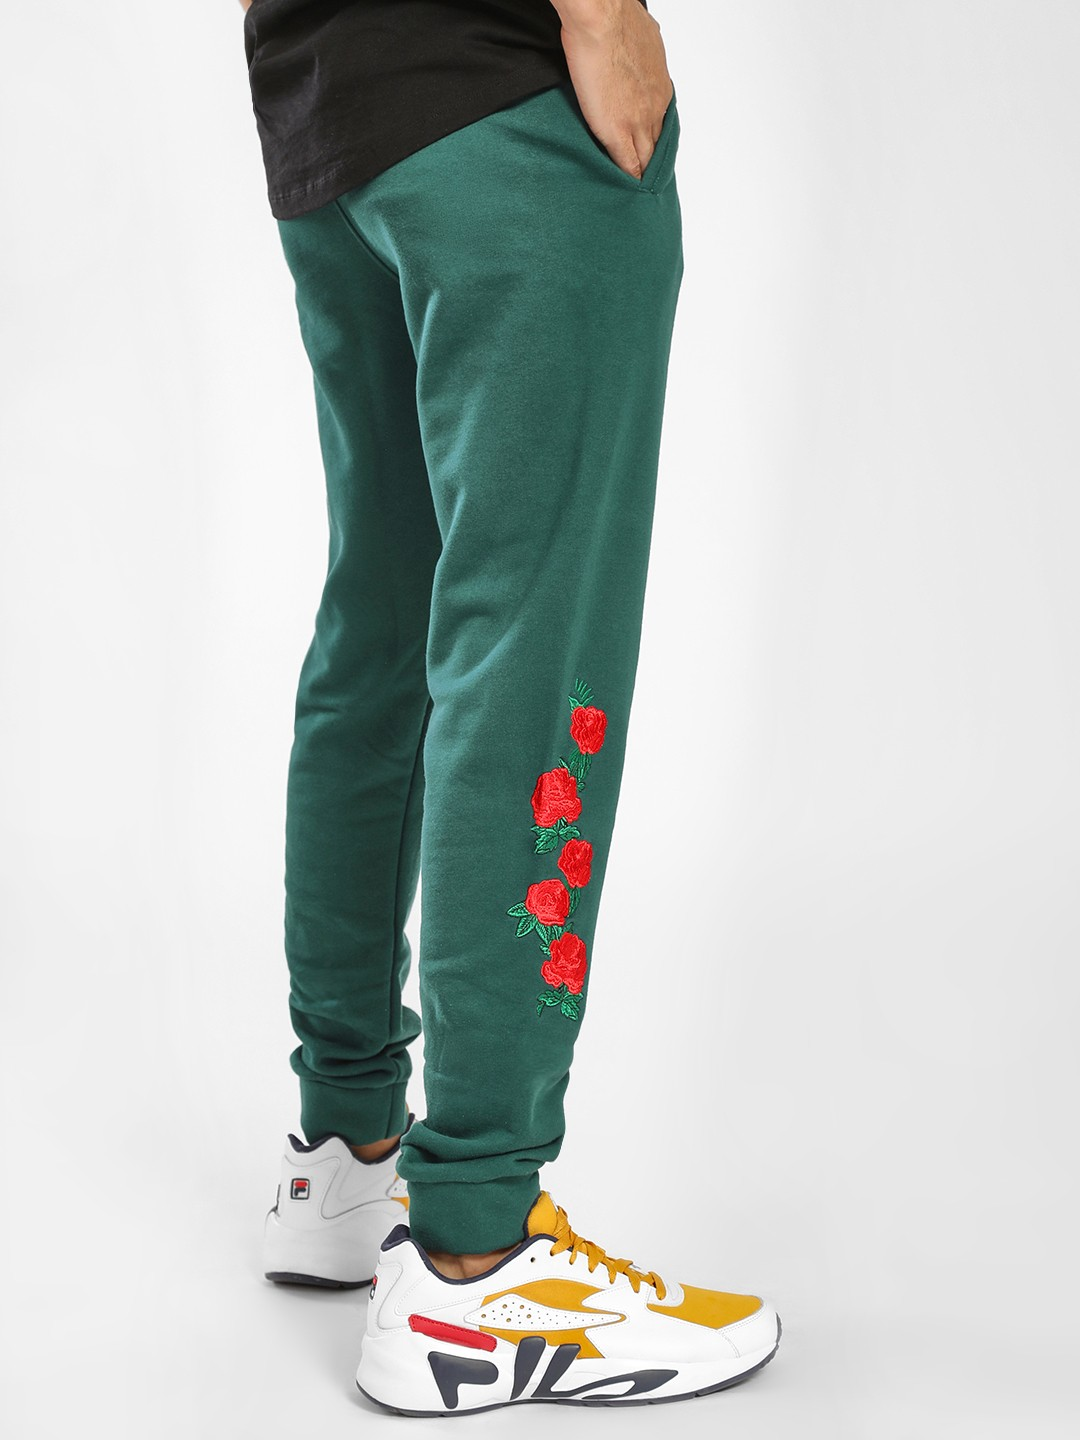 X.O.Y.O Green Floral Embroidered Patch Joggers 1